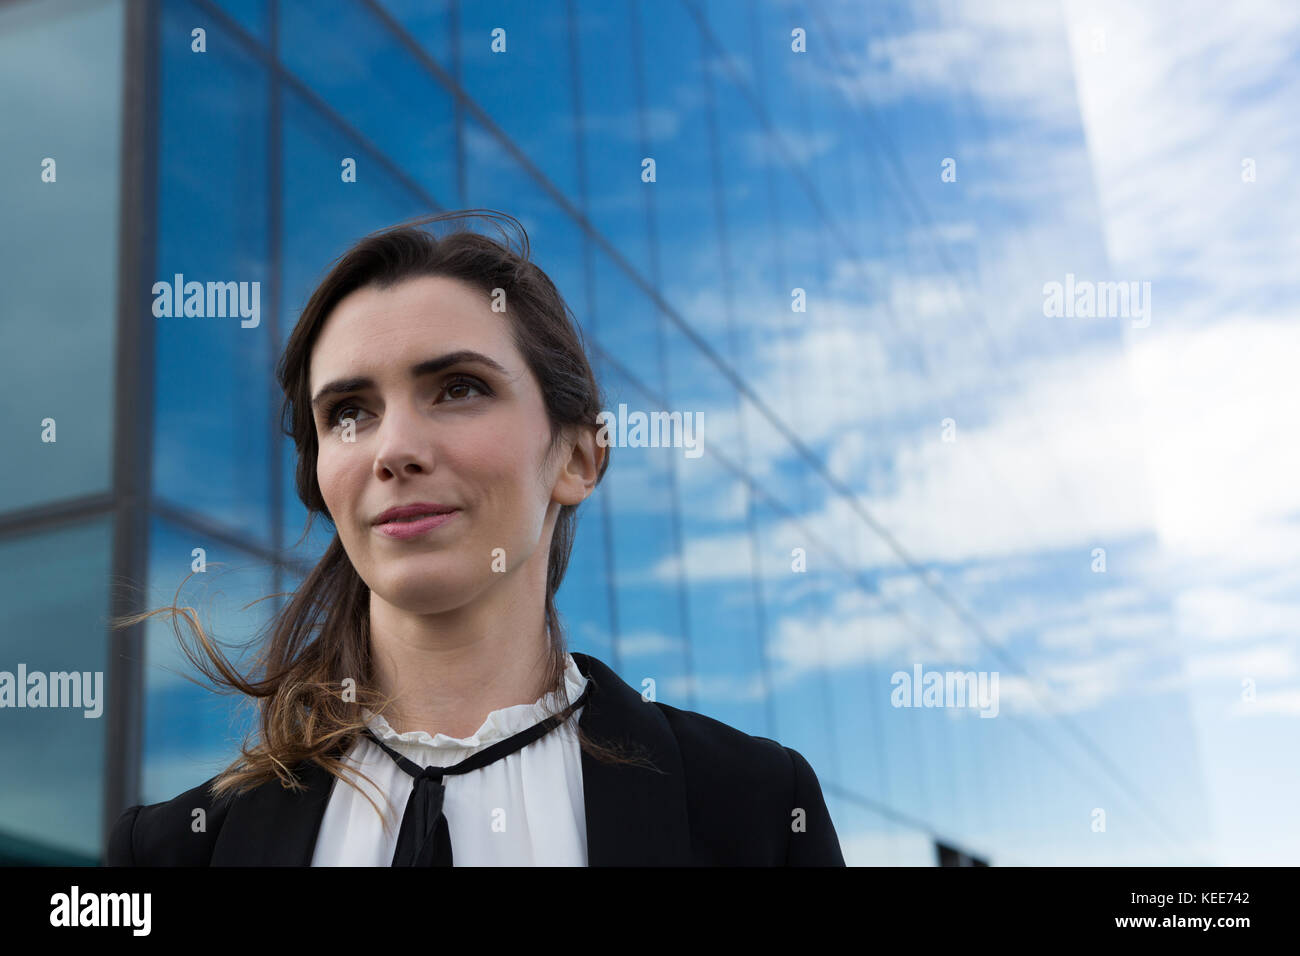 Young female executive standing in office premises - Stock Image